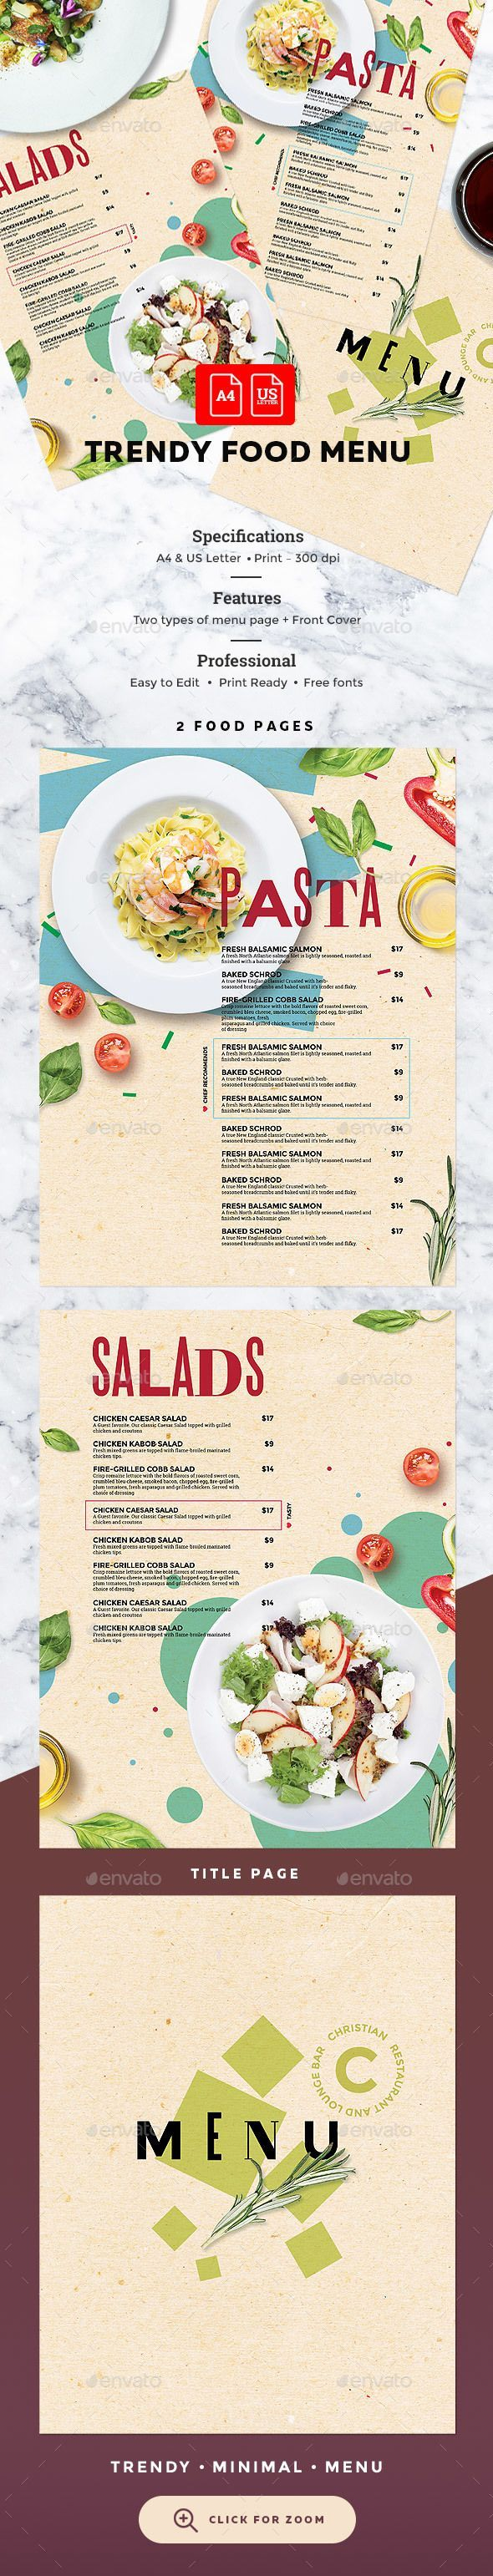 Best Design Images On   Food Menu Template Menu